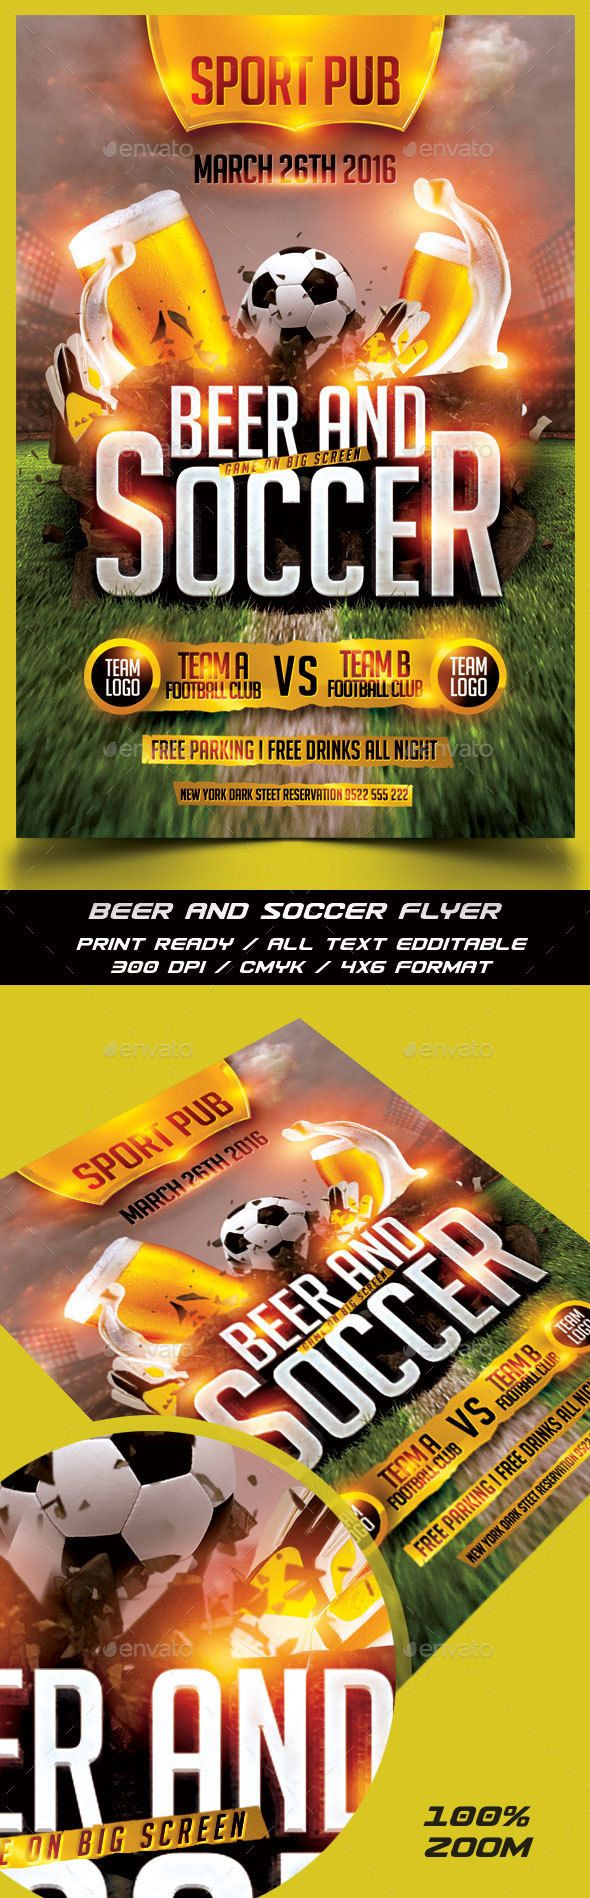 basketball event flyer template the full psd flyer here soccer and beer flyer